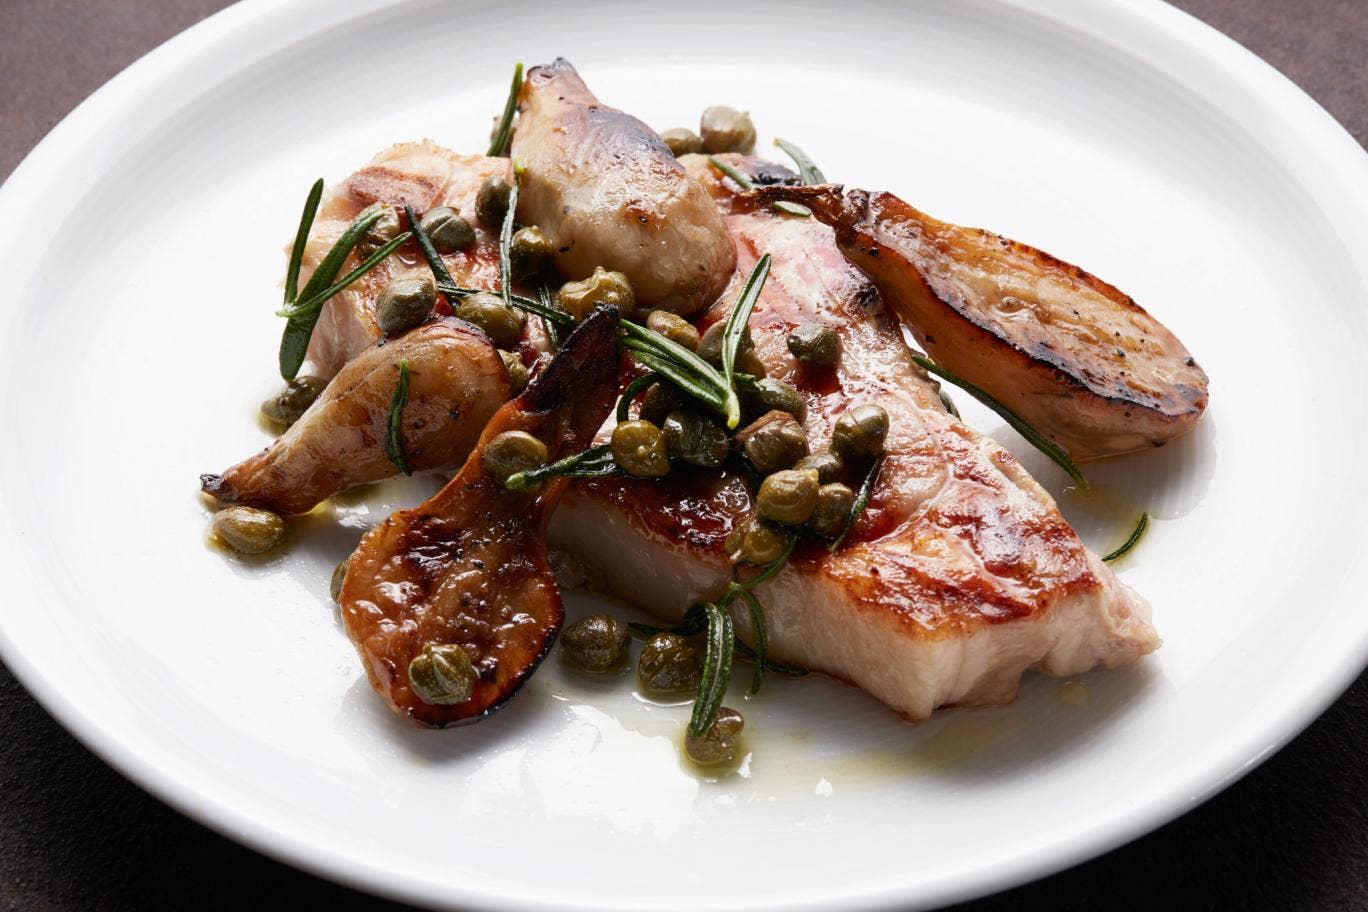 Grilled veal chop with Jerusalem artichokes, capers and rosemary